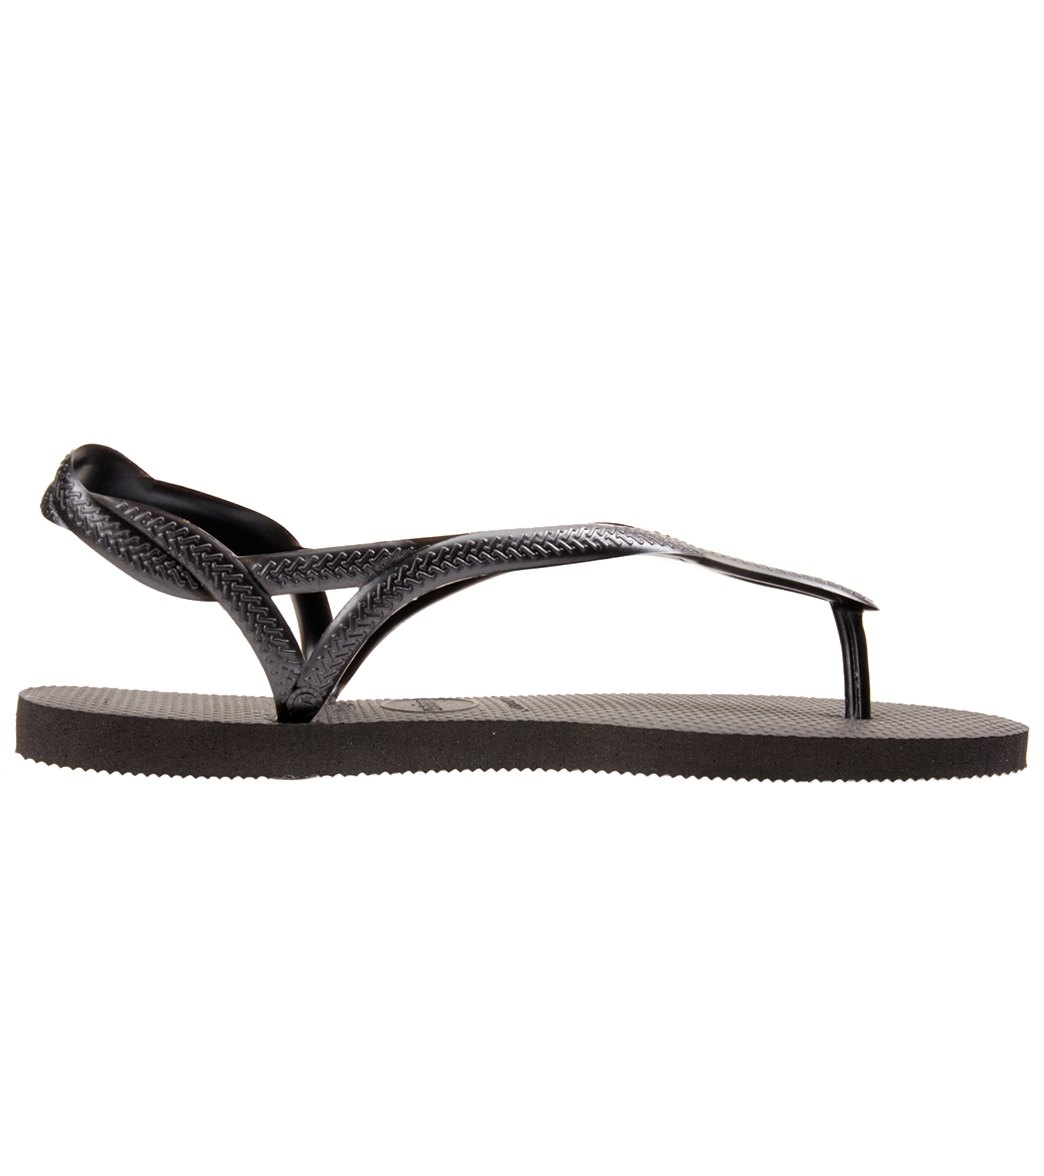 5a487b80668b Havaianas Women s Luna Sandal at SwimOutlet.com